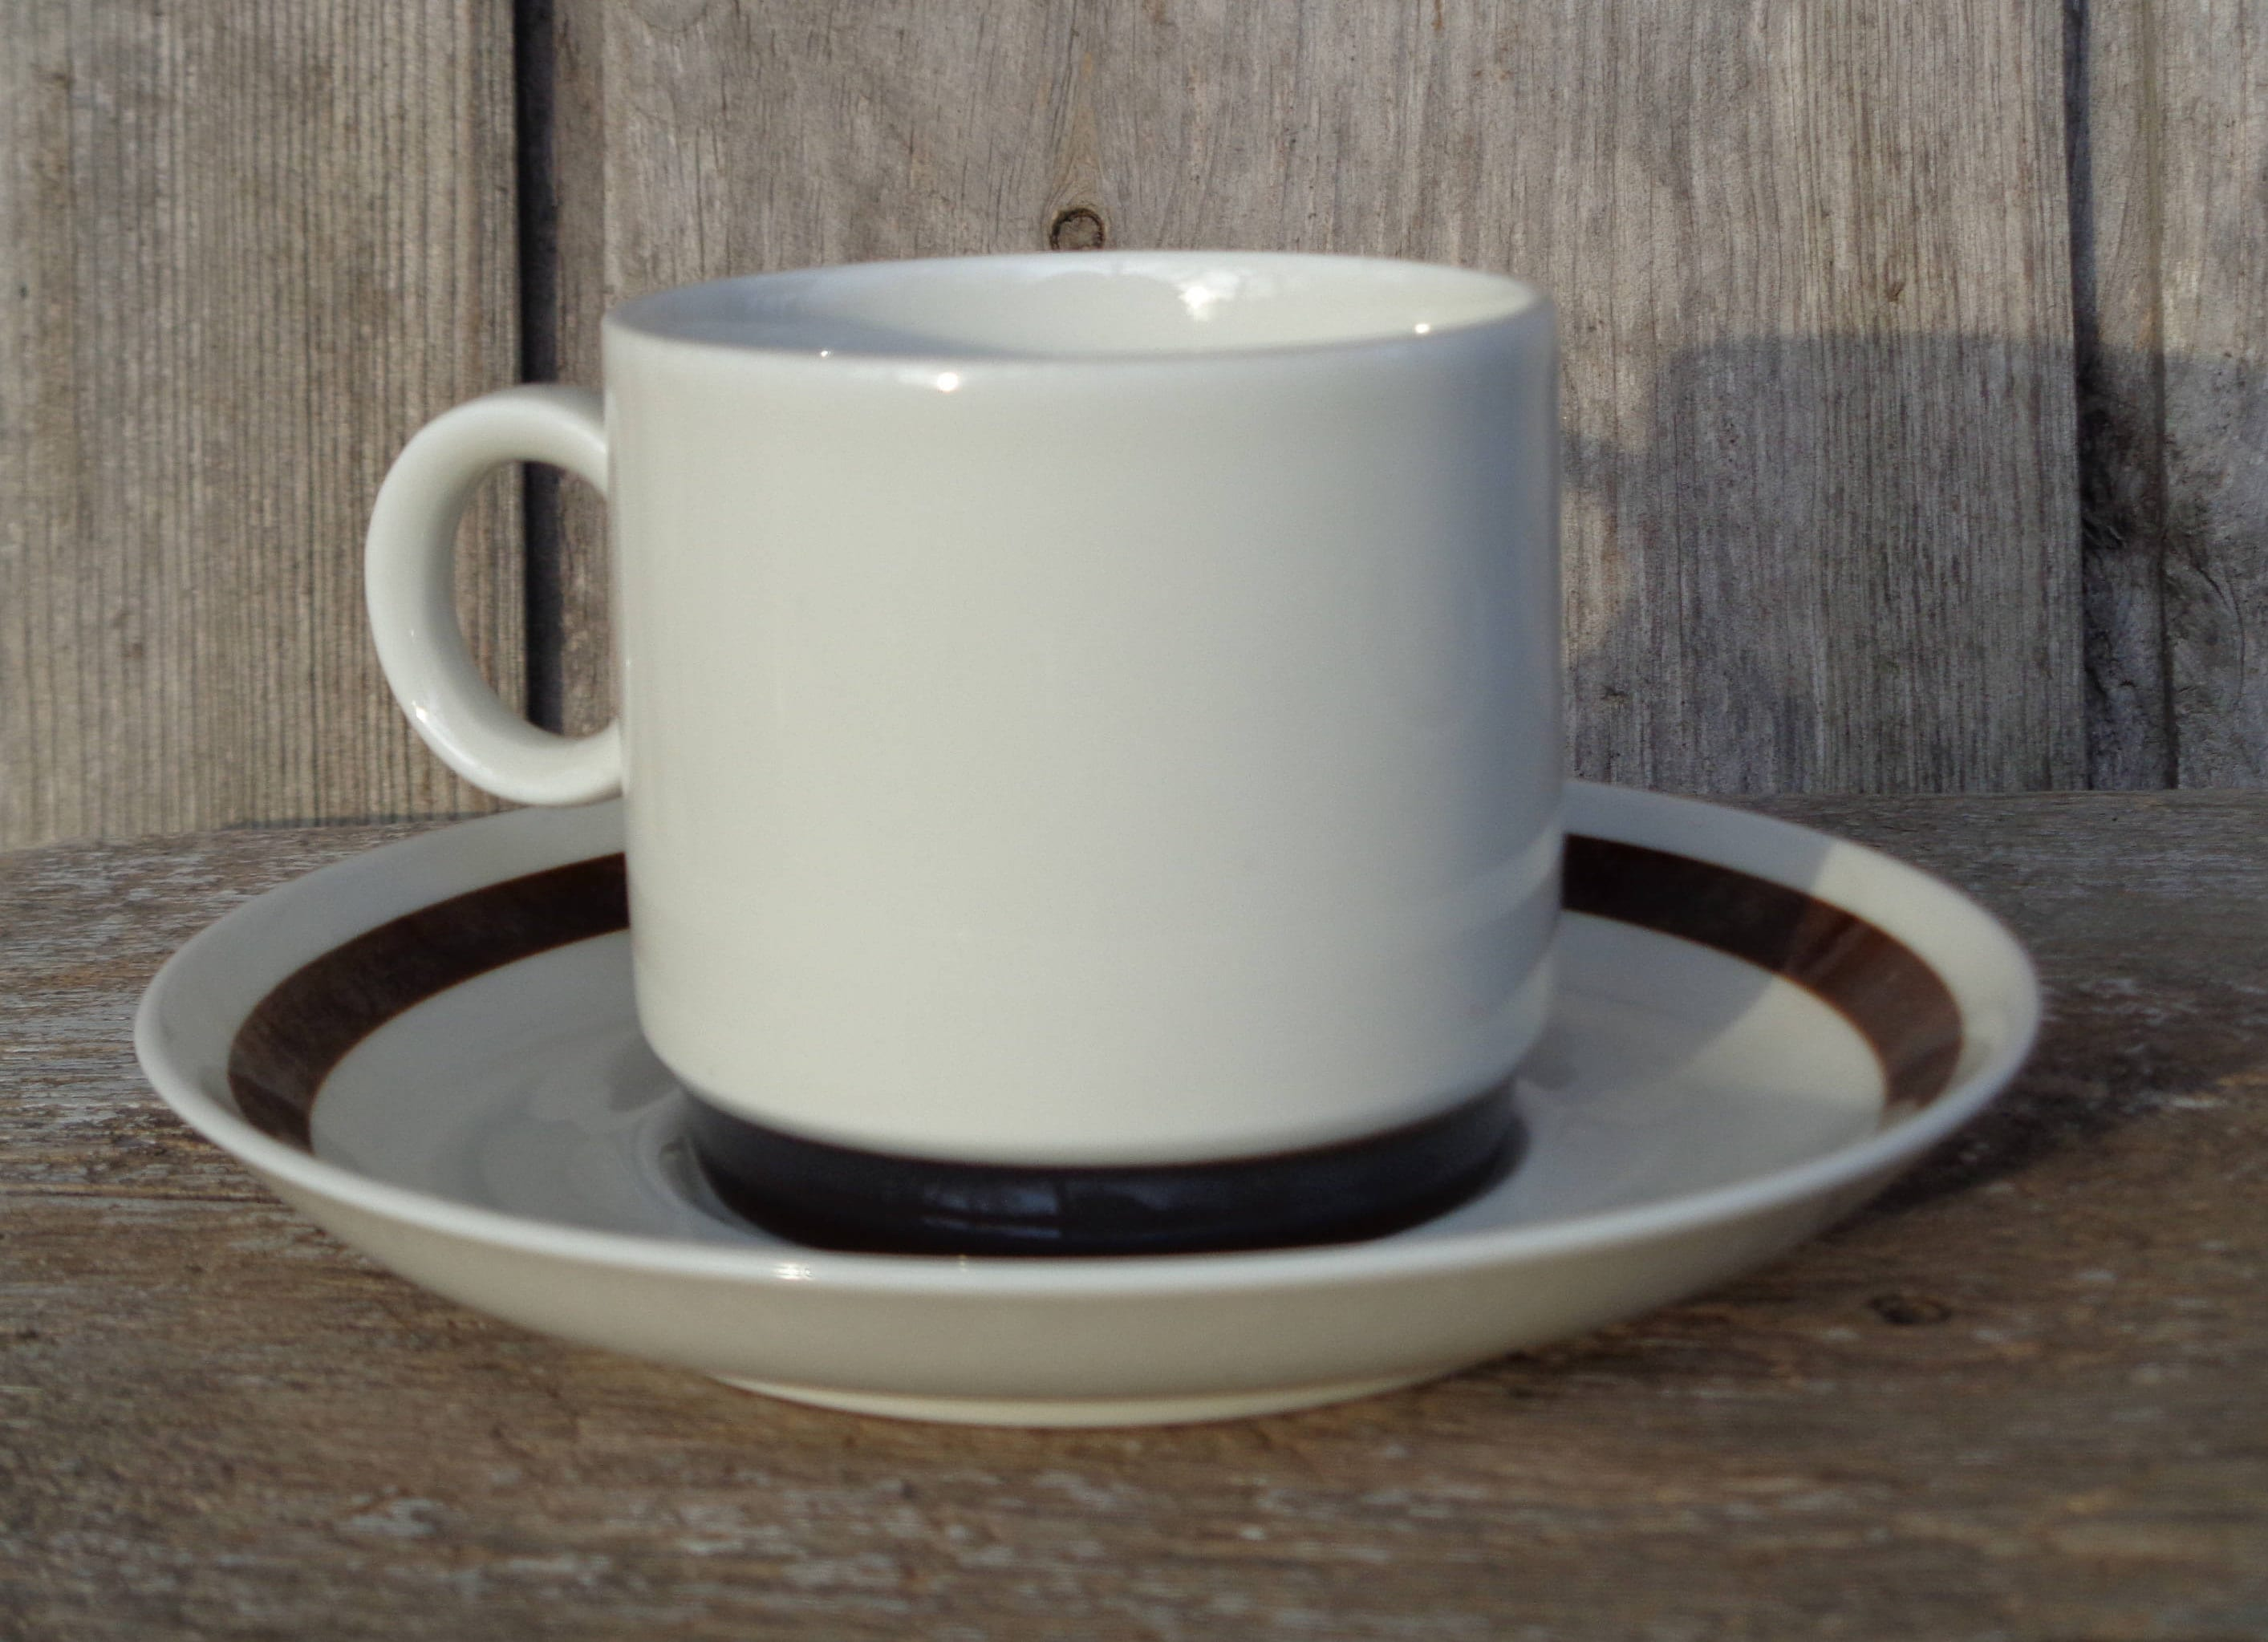 Small Coffee Cups And Saucers Swedish Vintage Small Coffee Cup Saucer Rorstrand Sweden Coffee Set Vdn P555 White Porcelain With Brown Rim Vintage Espresso Cup